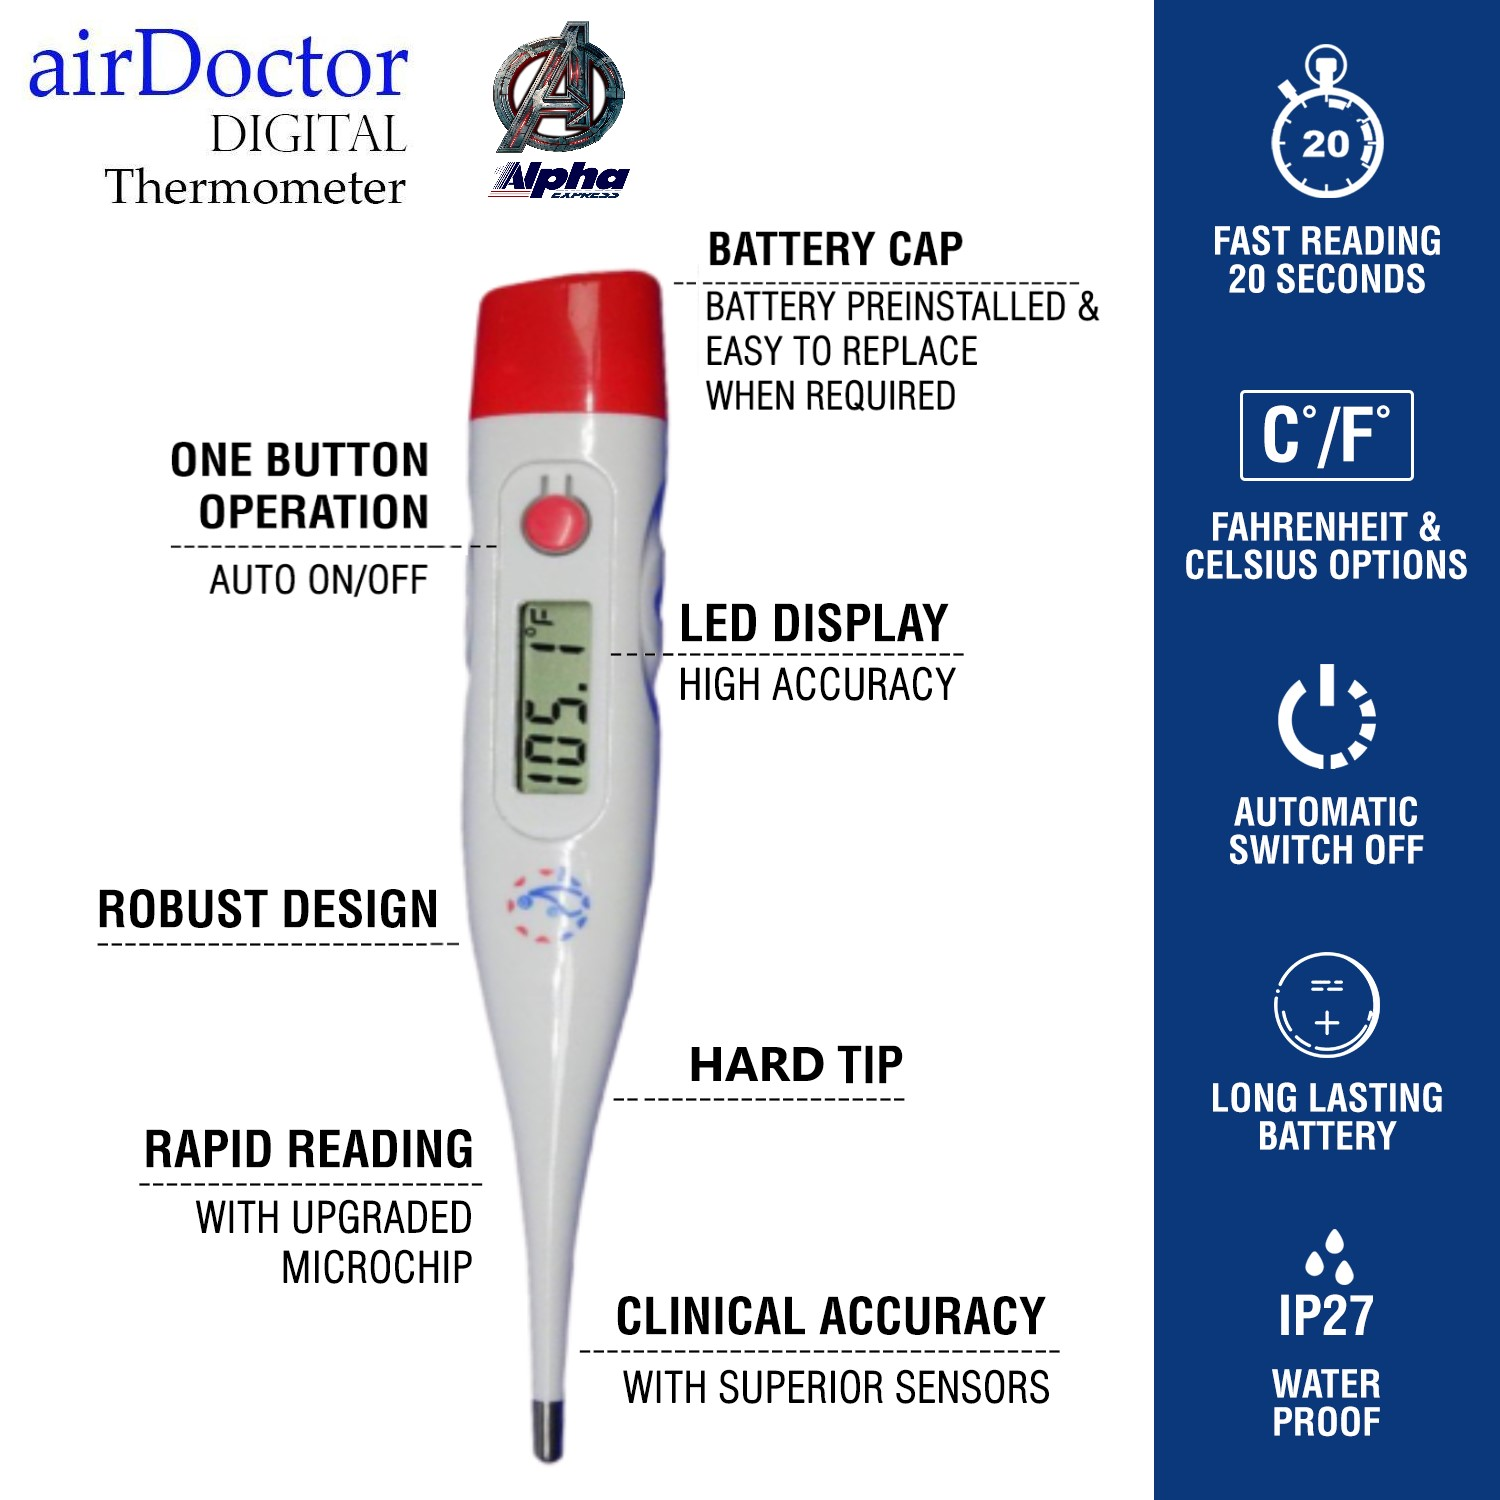 AirDoctor Digital Thermometer